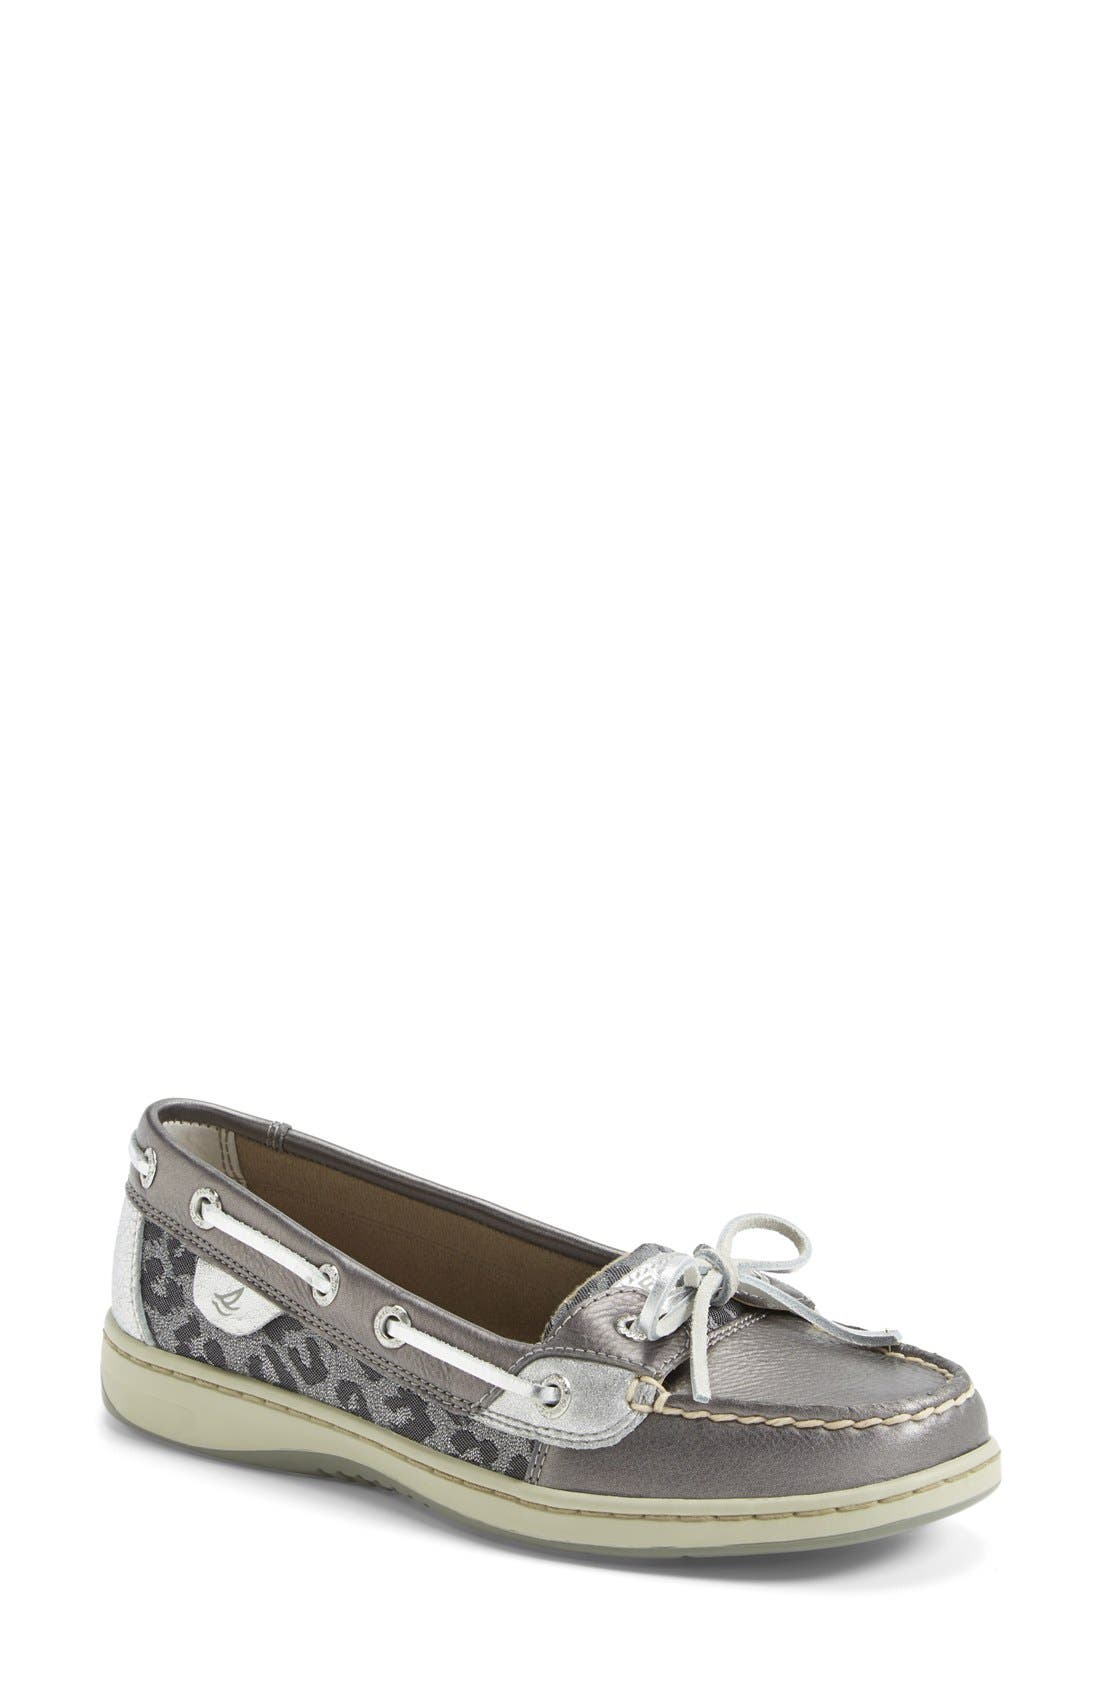 Main Image - Sperry 'Angelfish' Boat Shoe